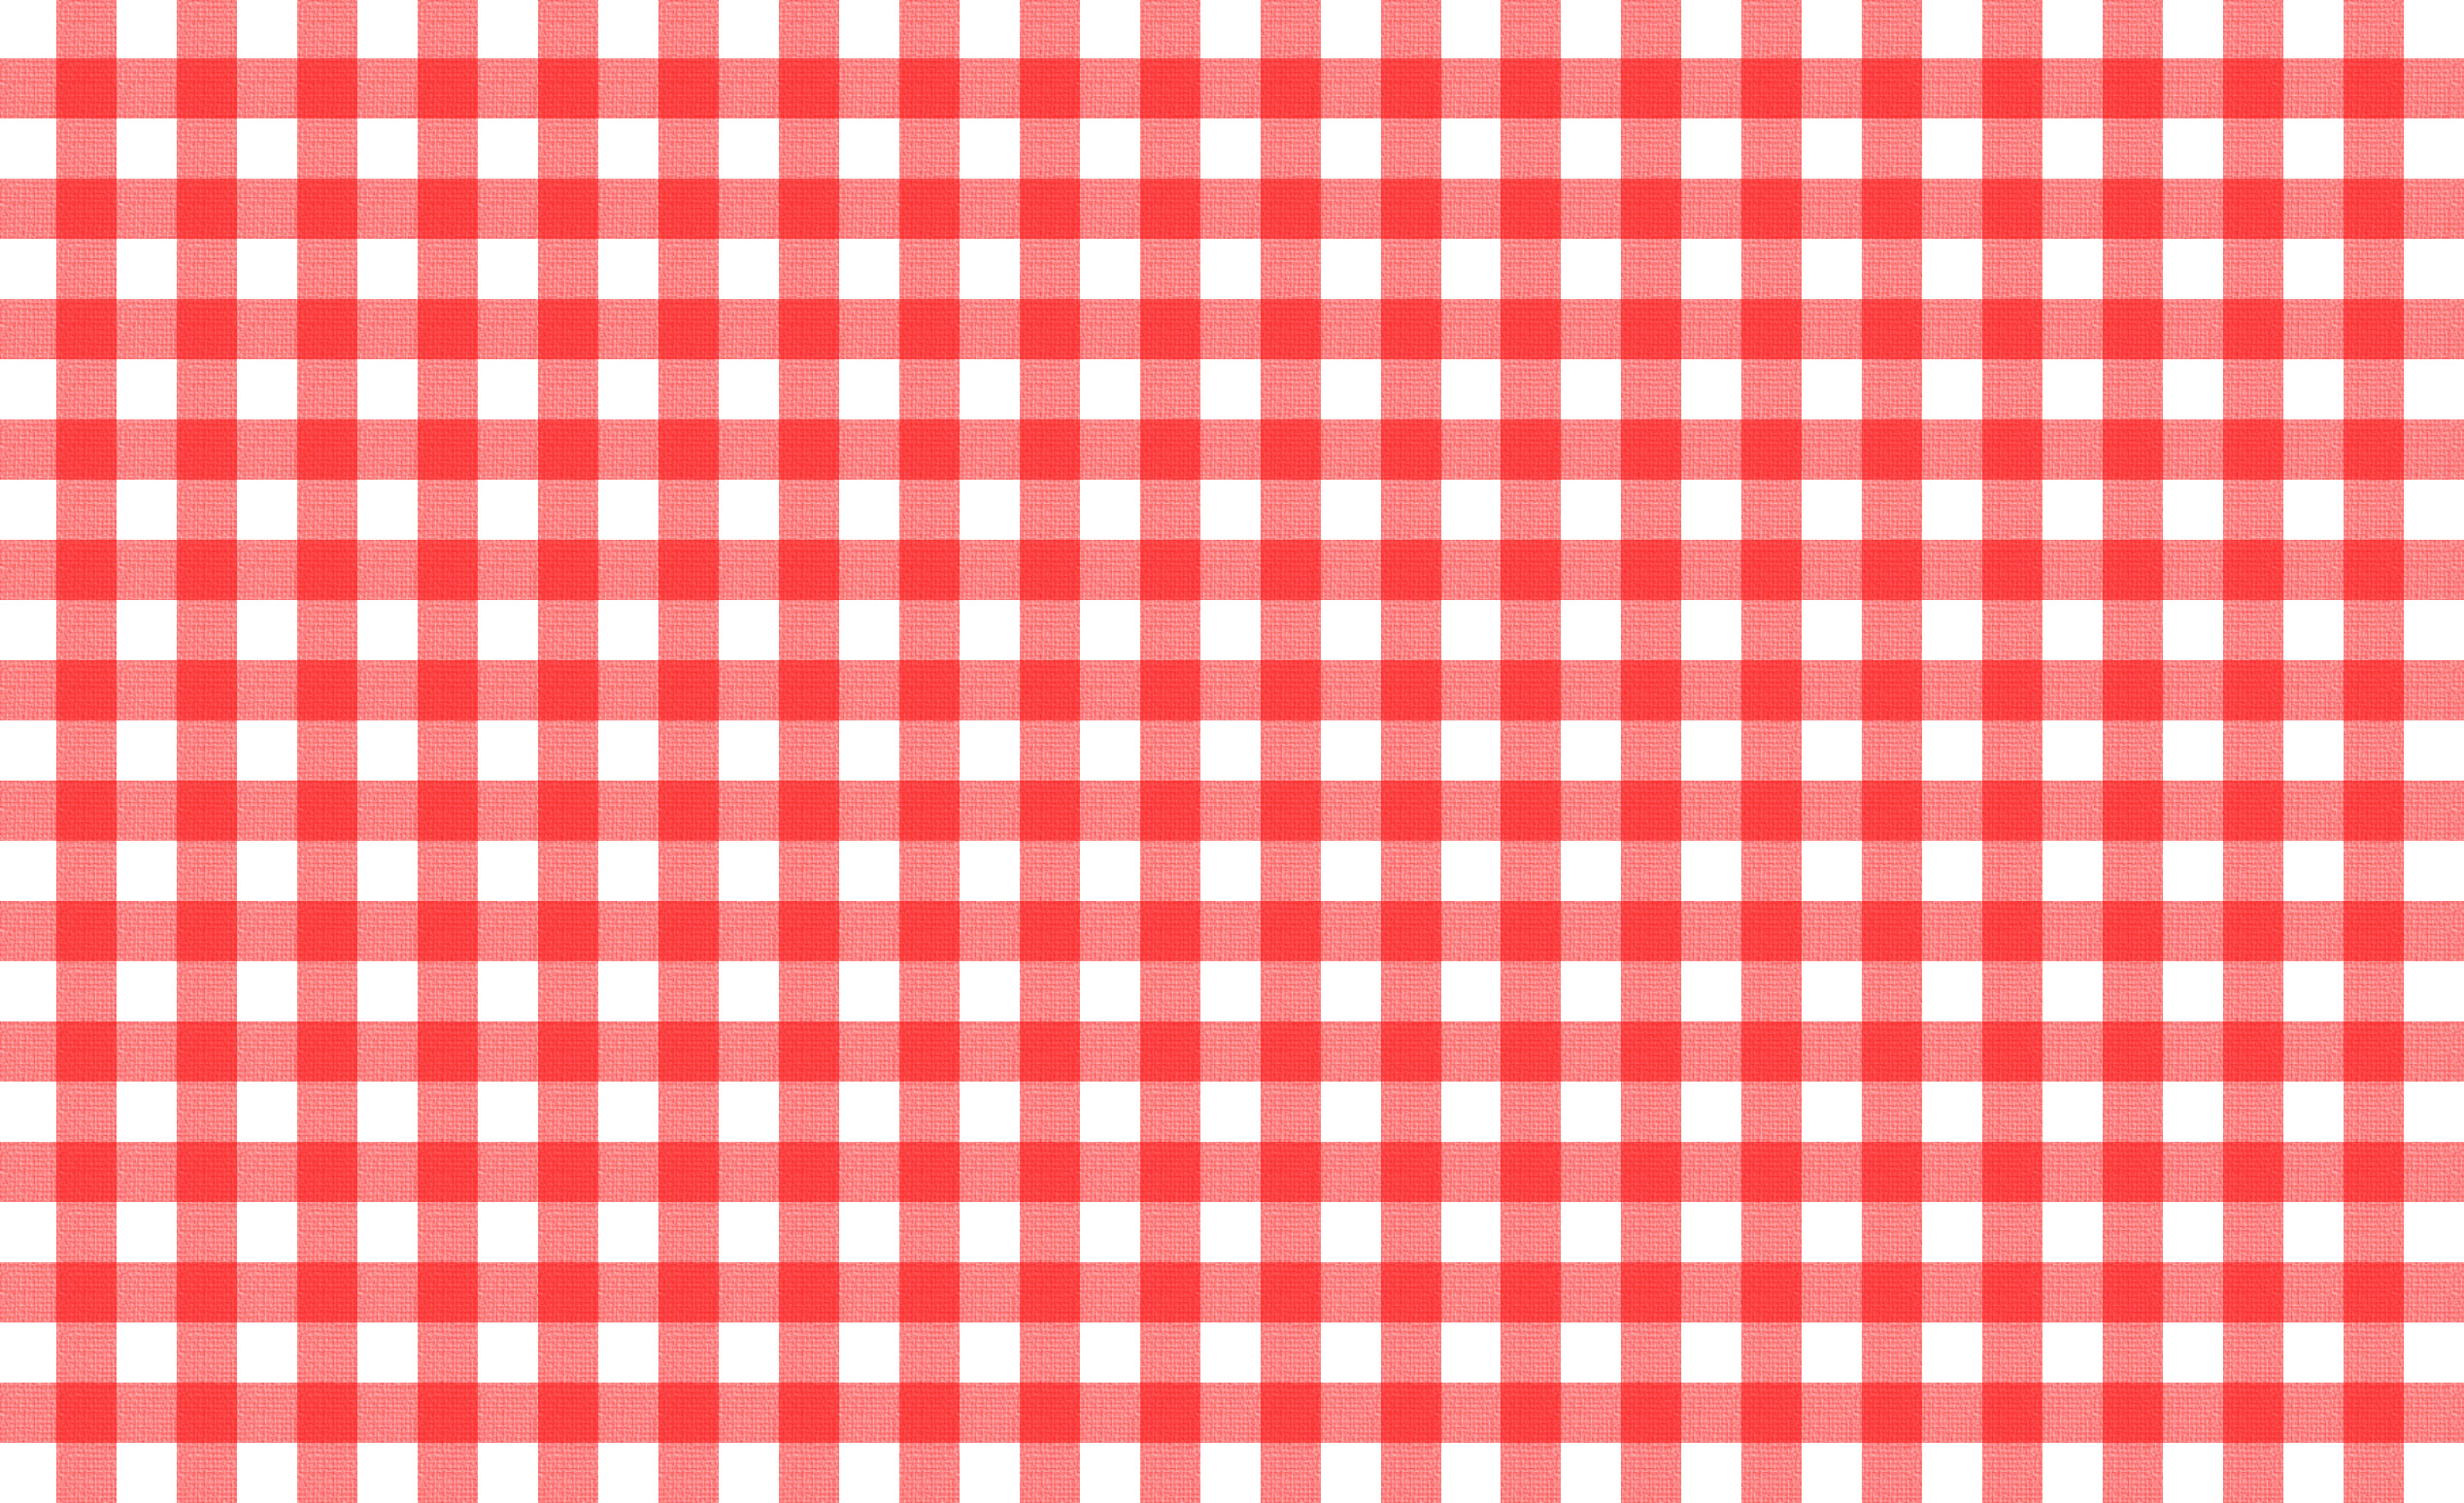 Tile Wallpaper Free Photo Red And White Tablecloth Pattern Seamless